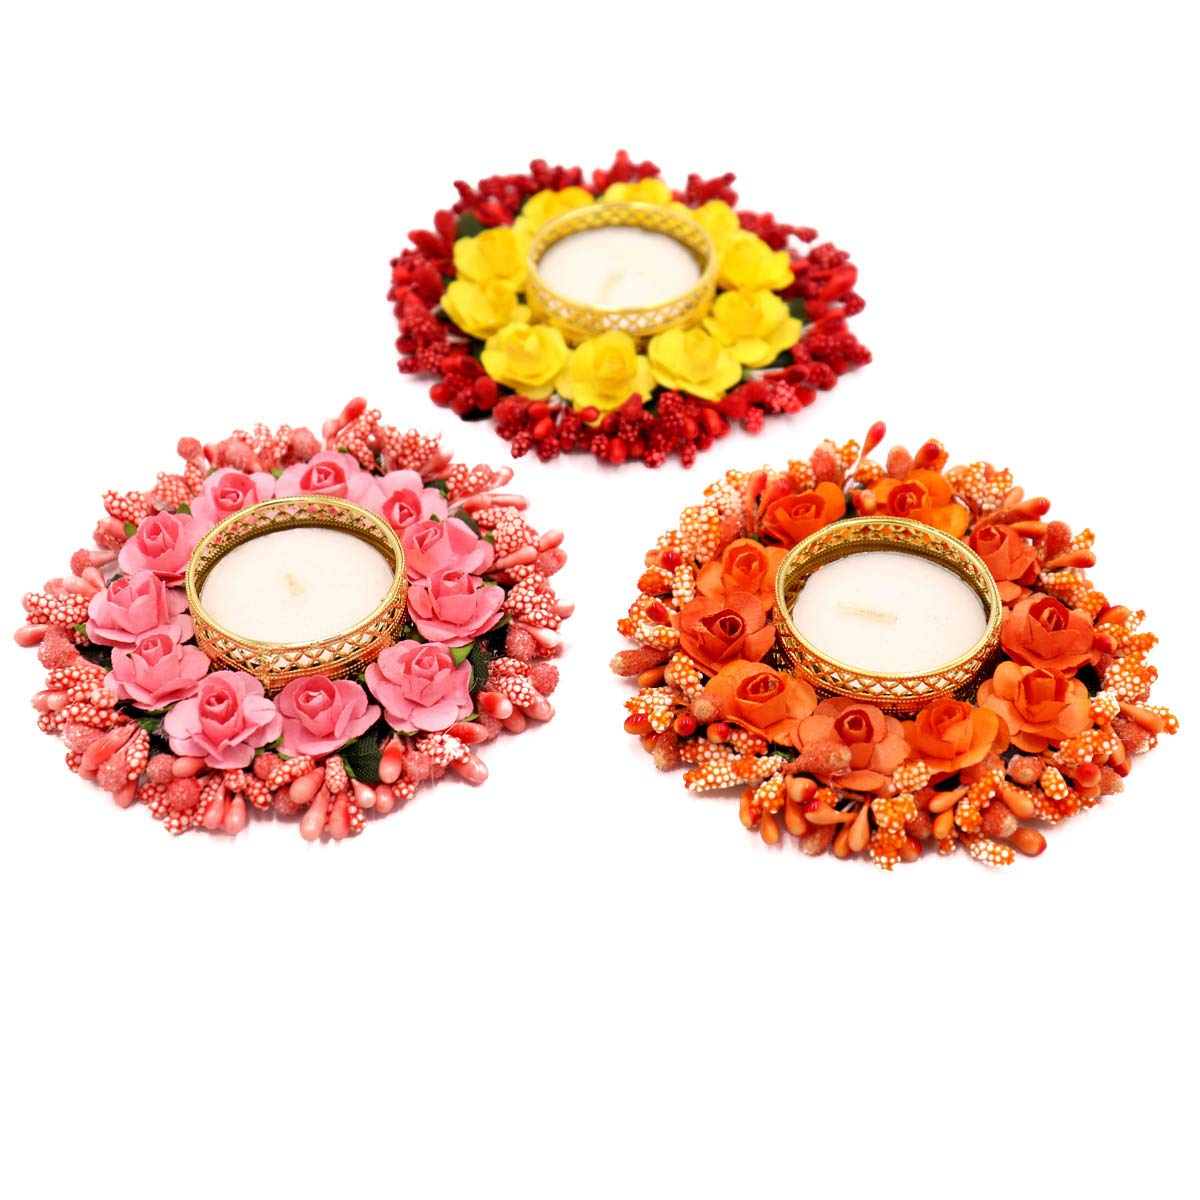 Best Decorative Tealight Candle Holders